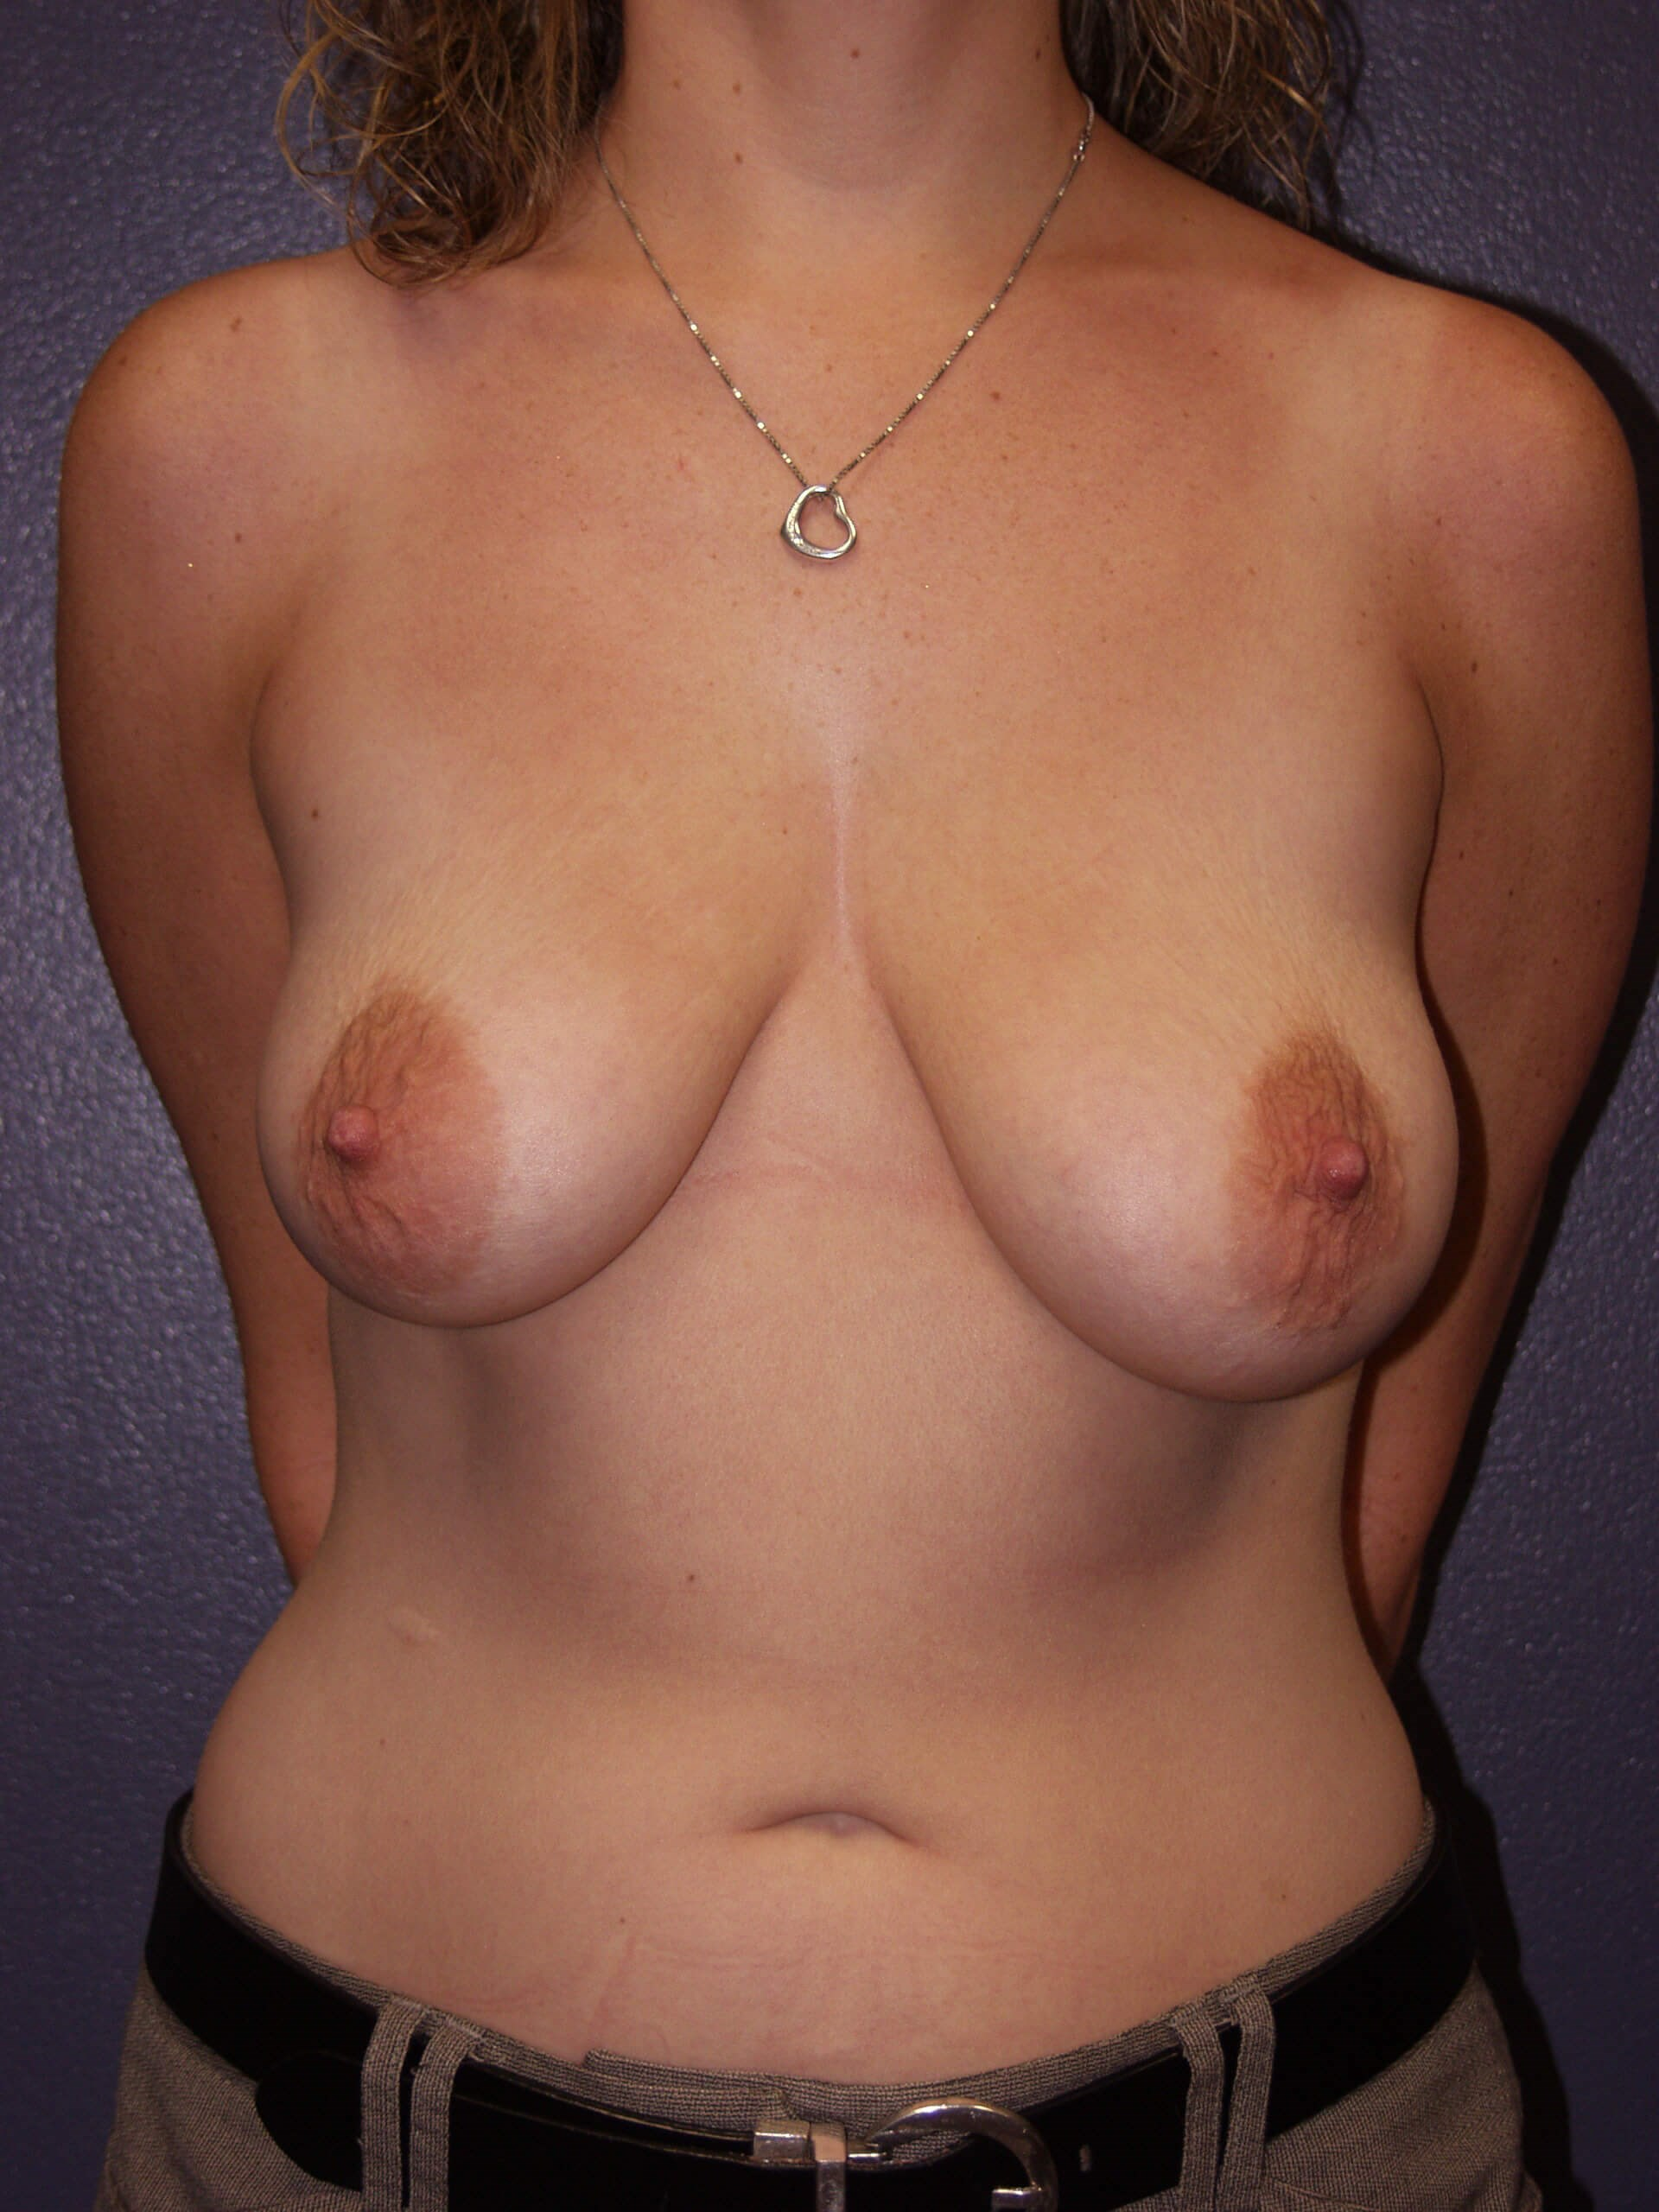 Breast lift without implants Before